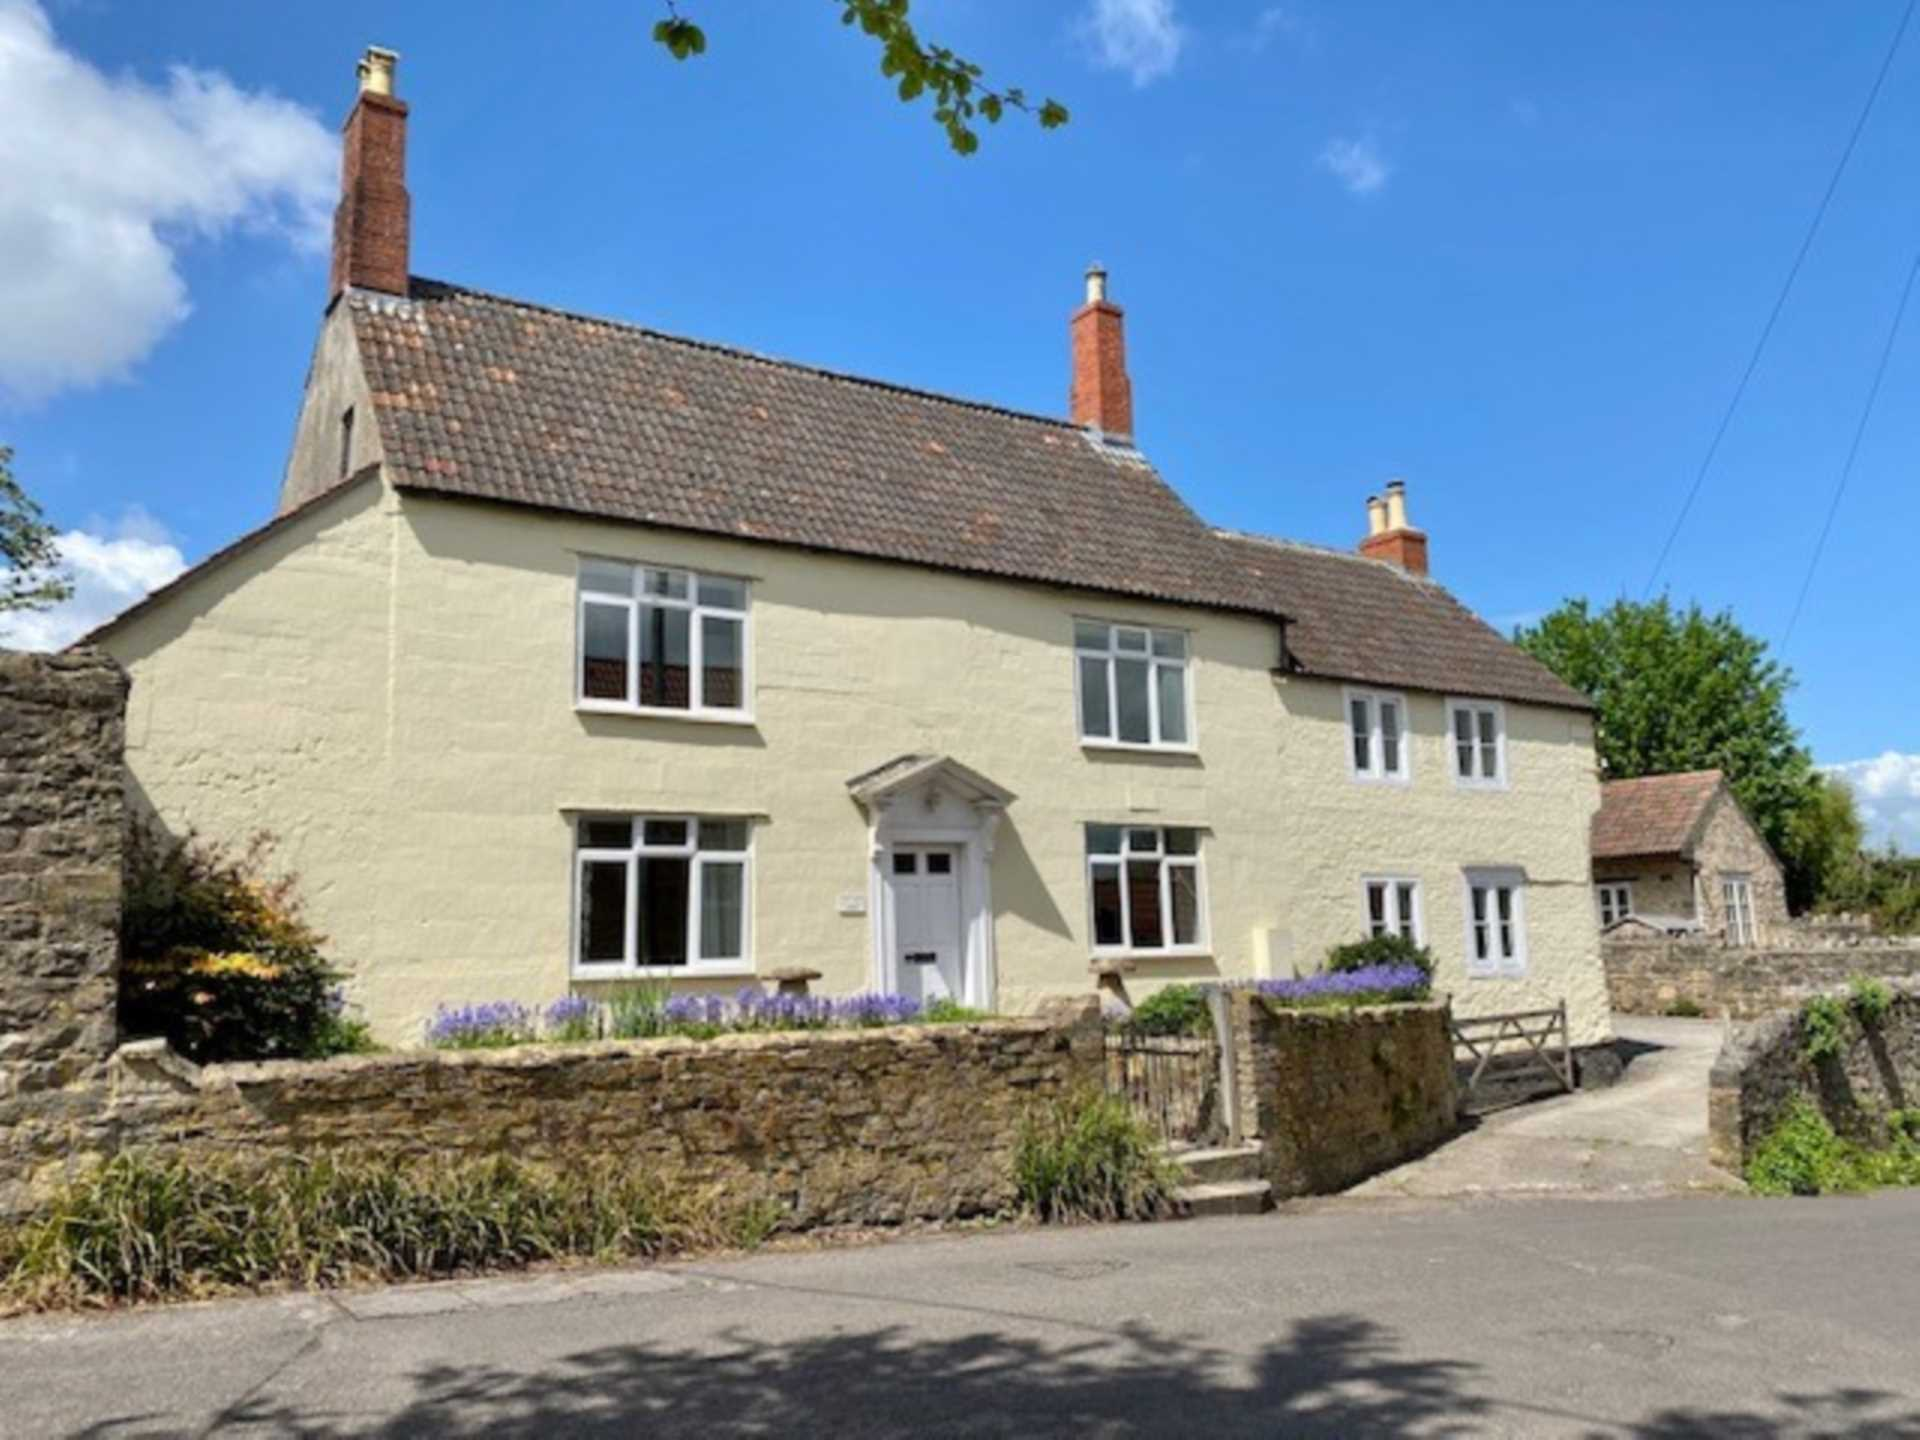 Swallows Property Letting - 4 Bedroom House, High Street, Nunney